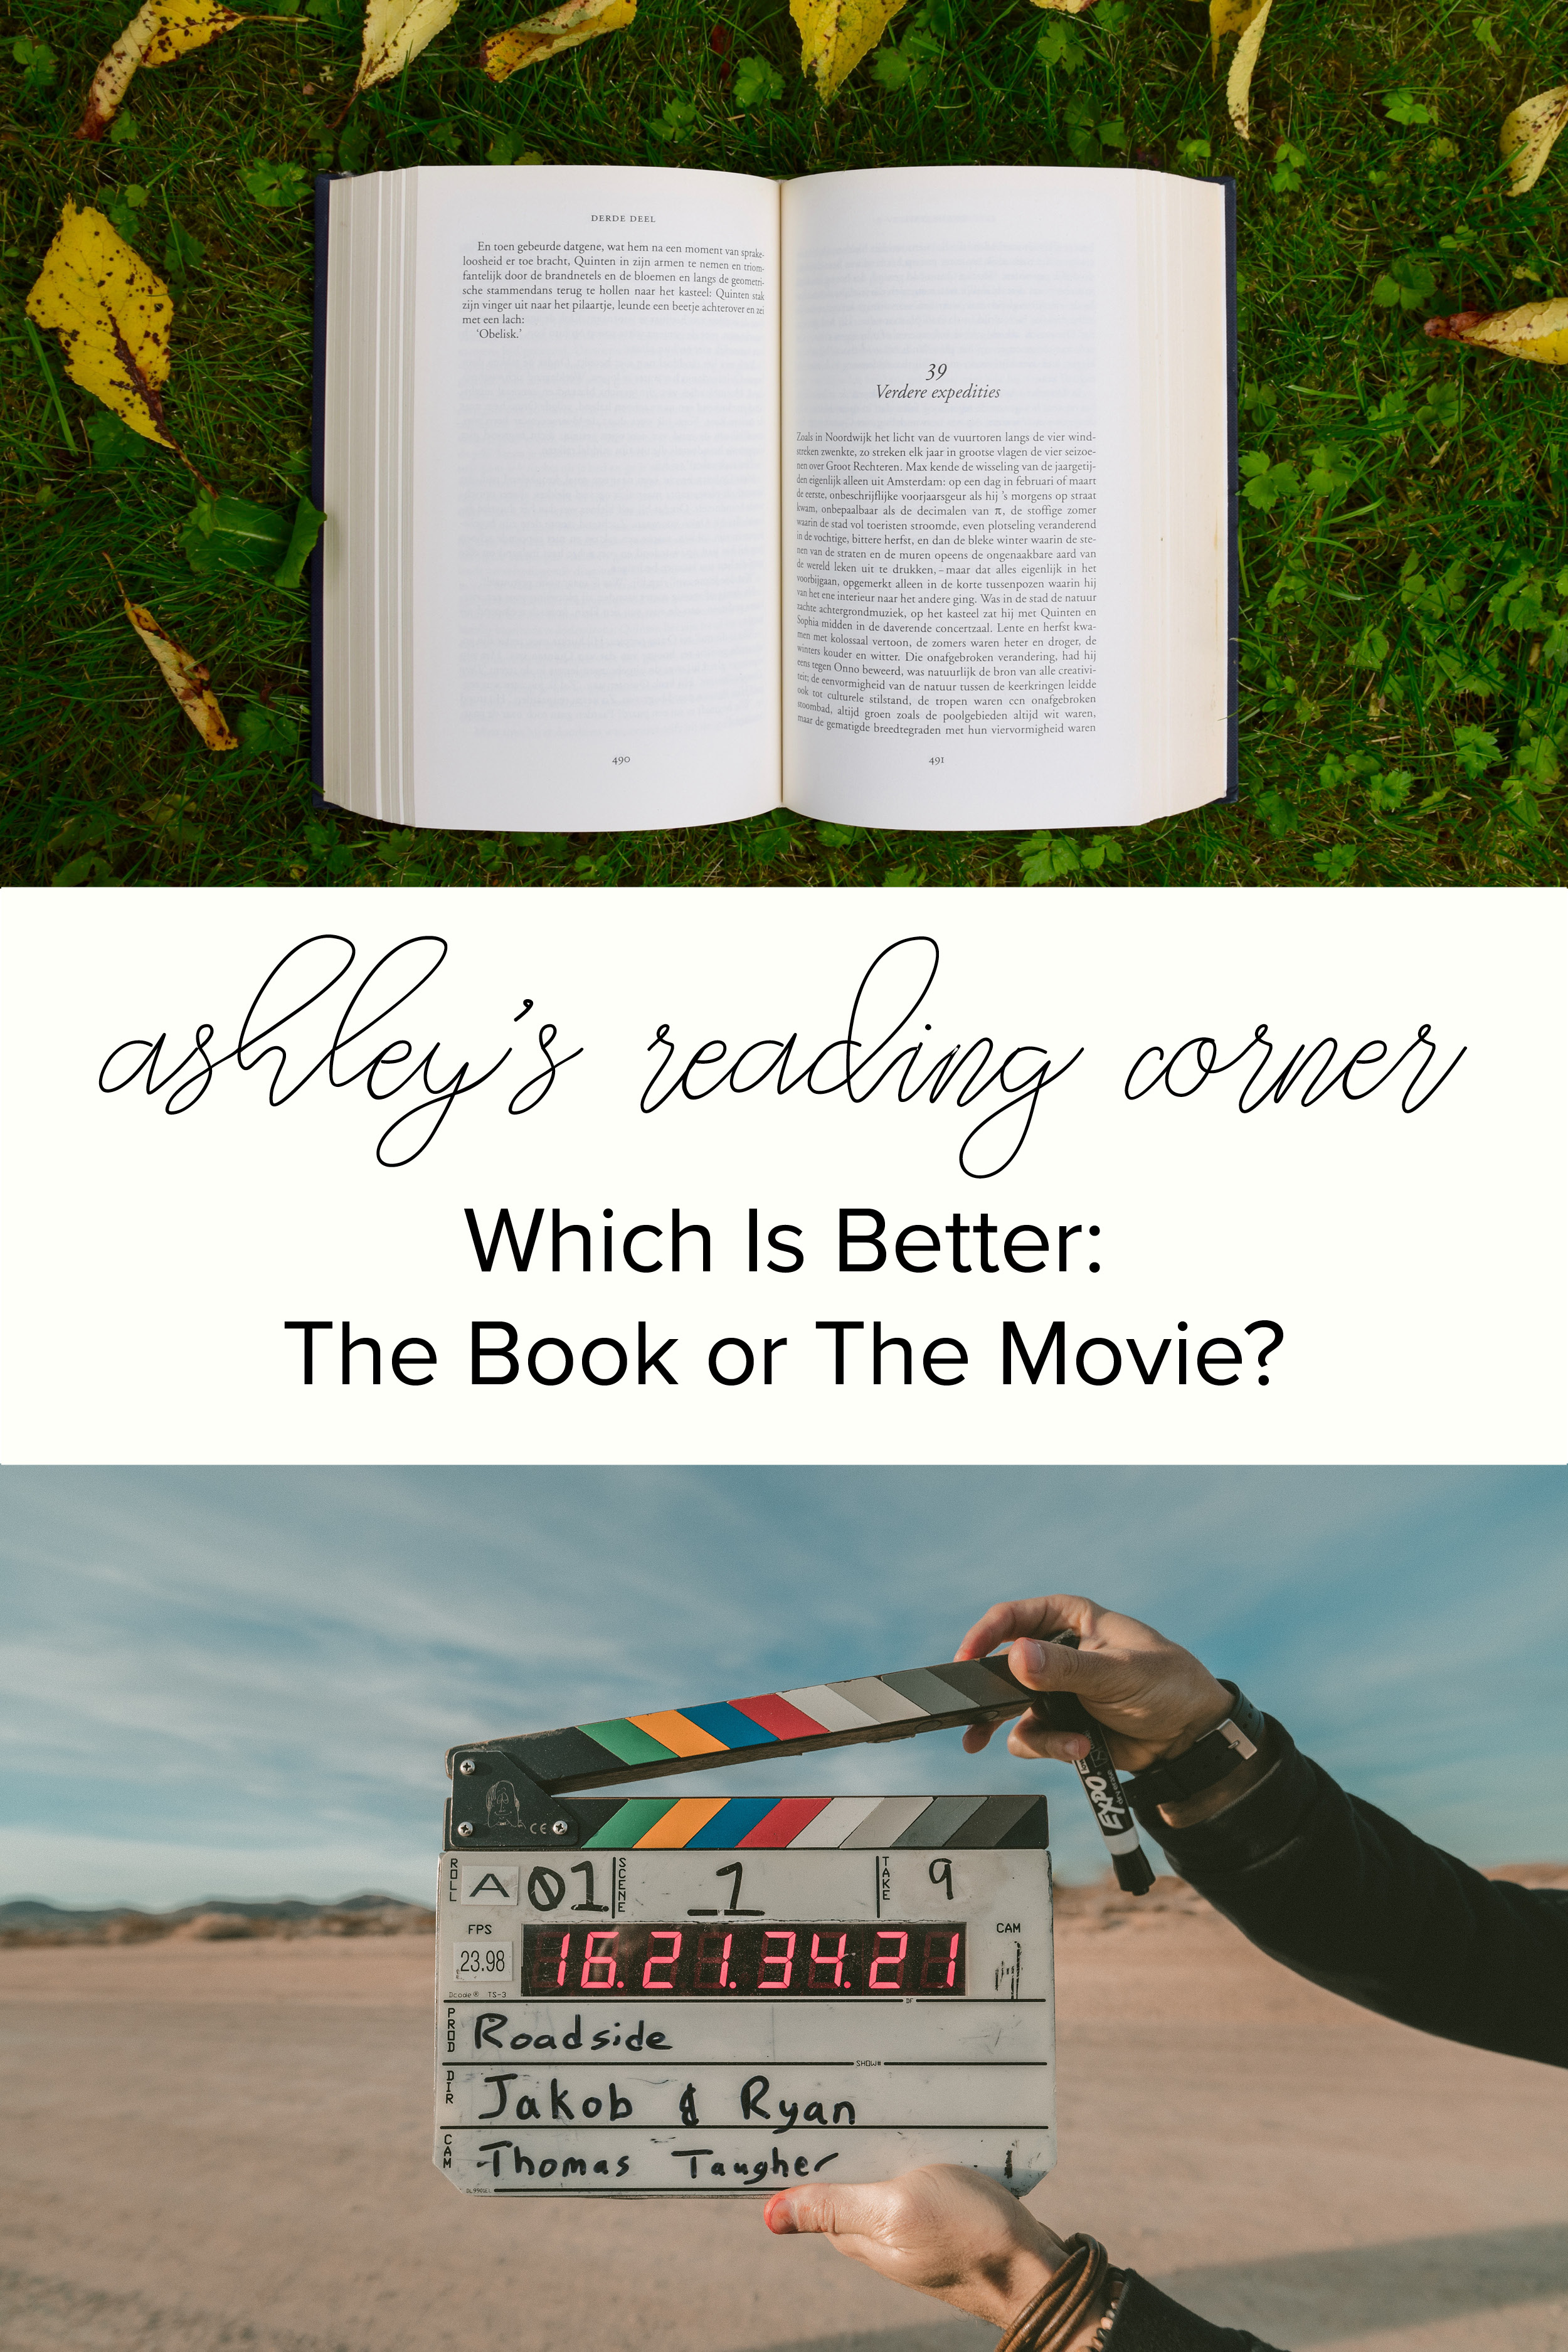 Which is better: the Book or the Movie?